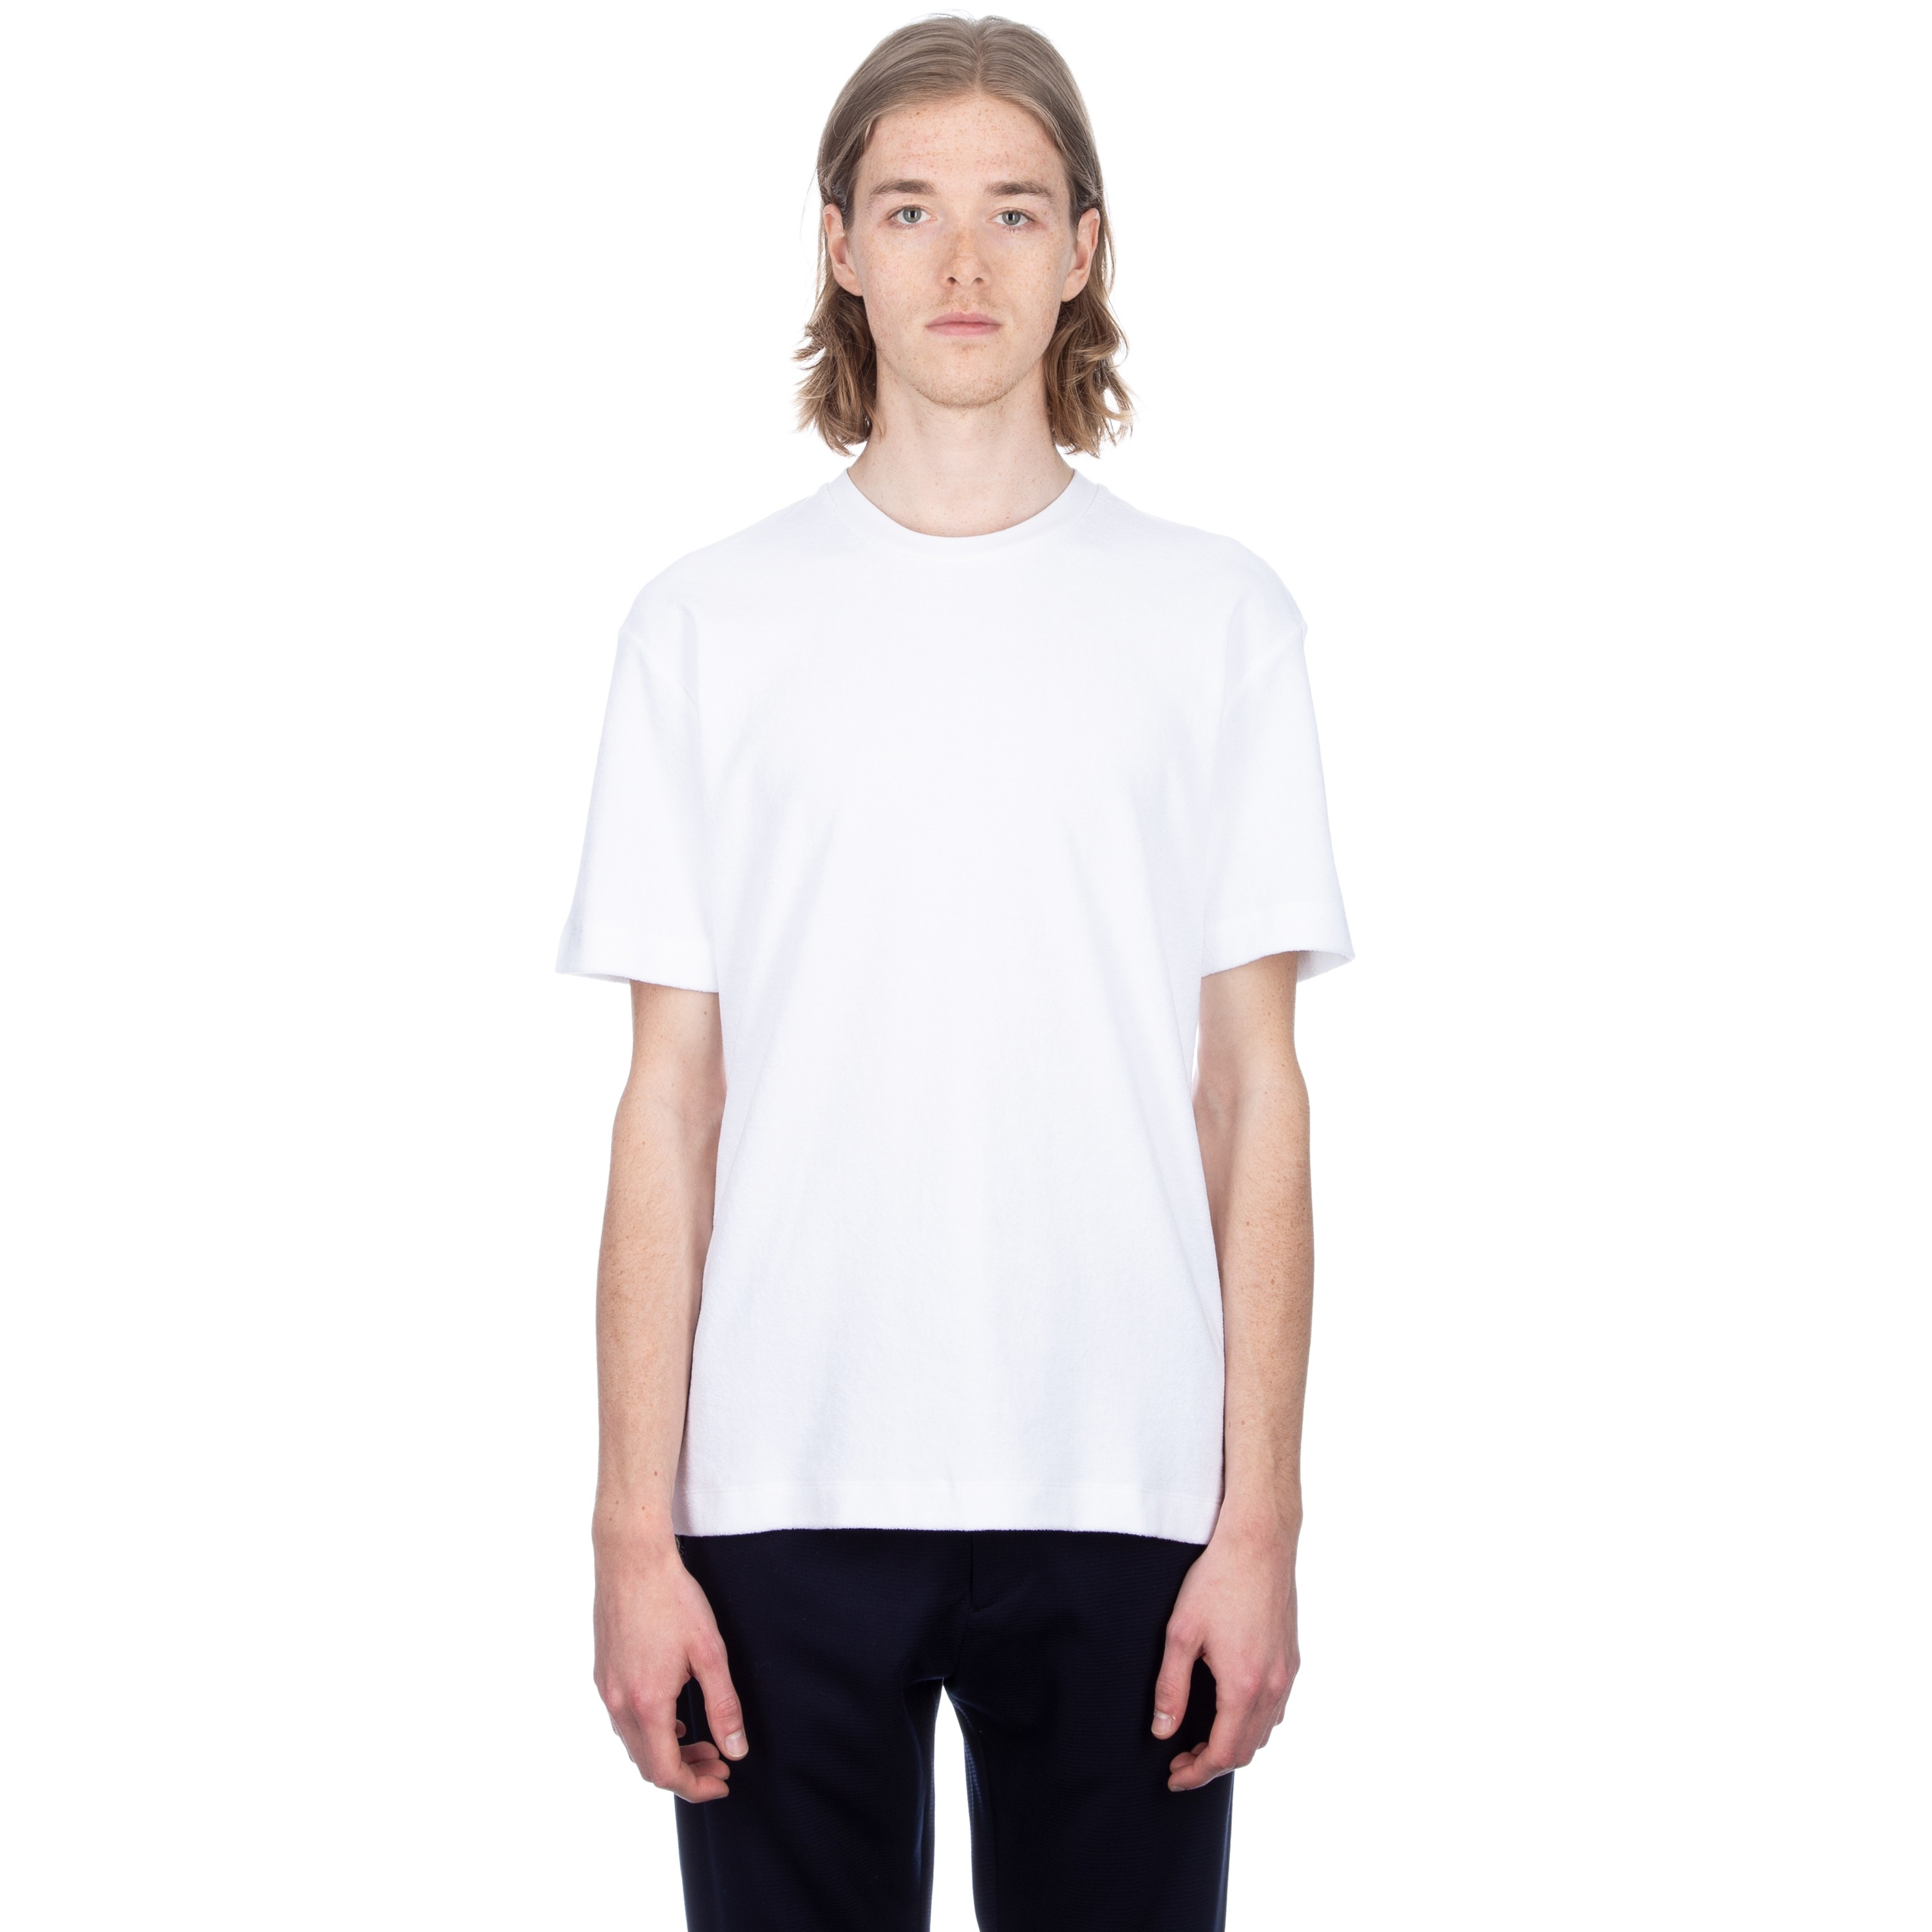 20c655a0f5eb8 Sunspel Cotton Towelling Relaxed Fit T-Shirt (White) - Consortium.